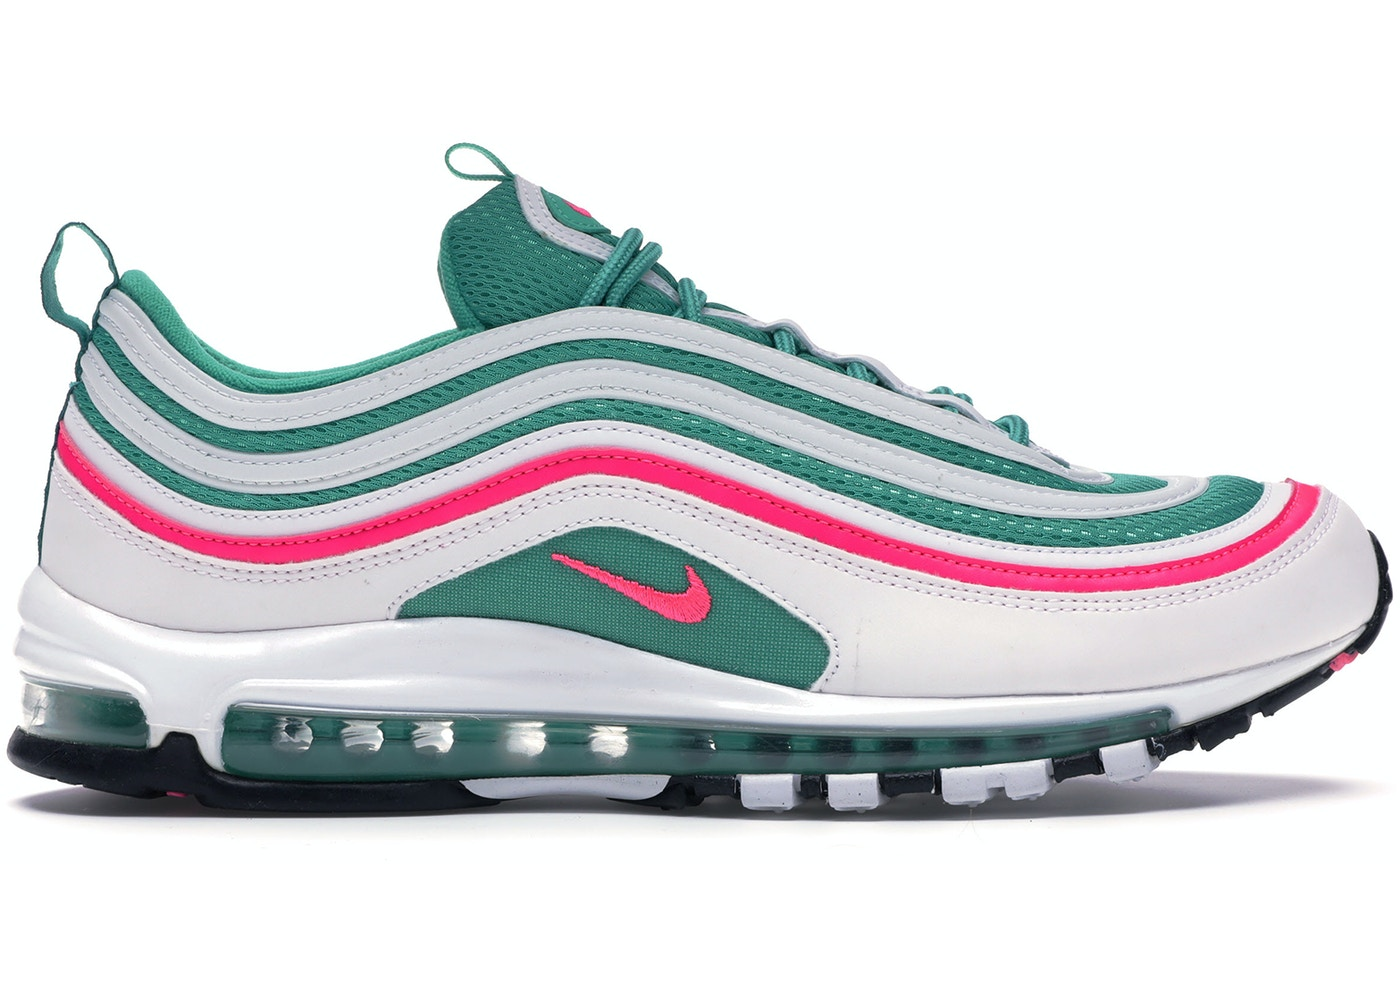 new products bbab1 7acd7 Air Max 97 South Beach - 921826-102